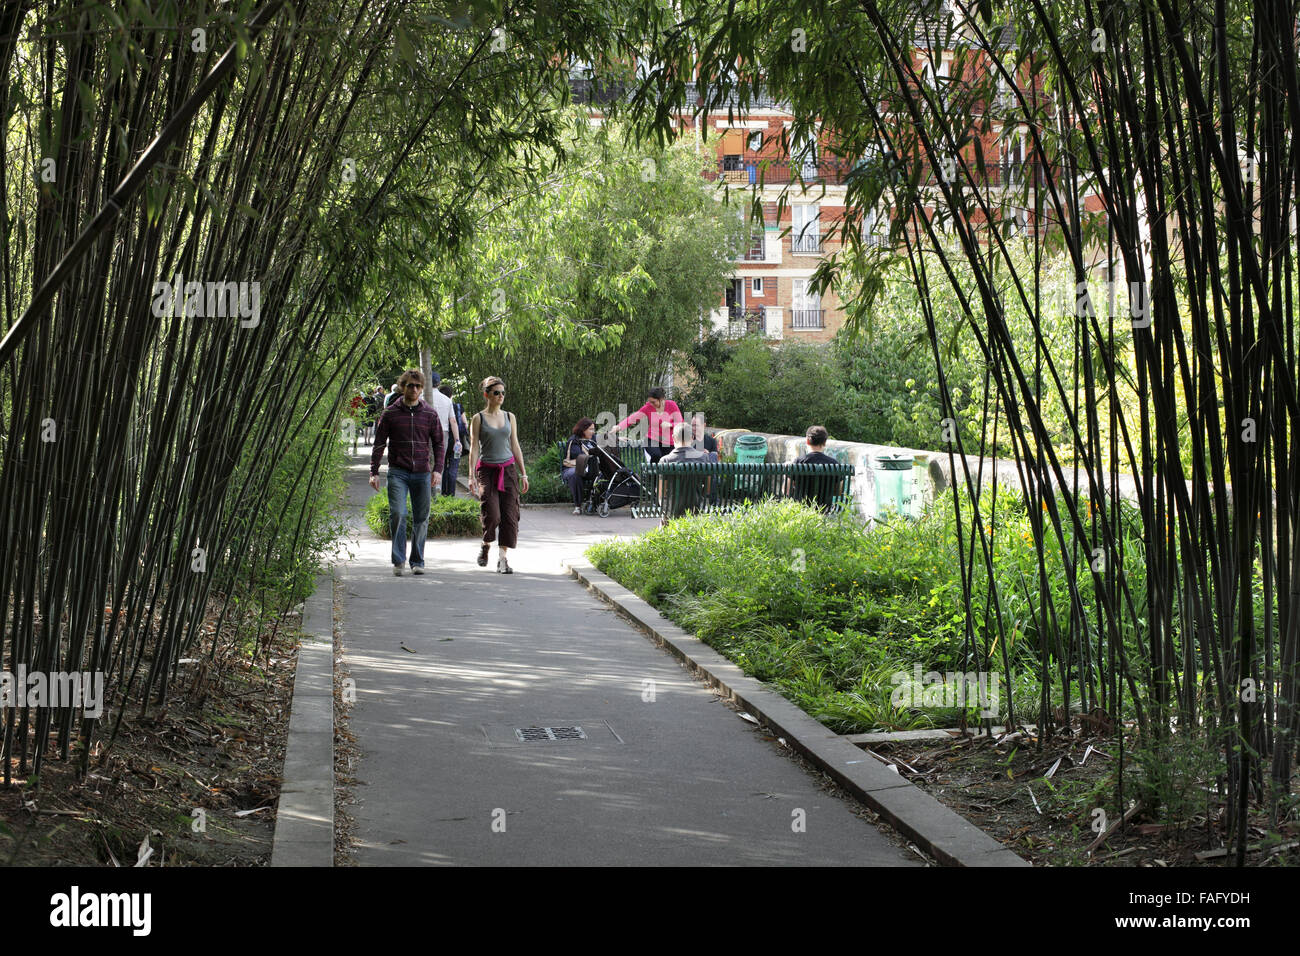 A bamboo grove on the Promenade Plantee, Paris. (A disused railway line turned into a landscaped walking route.) - Stock Image